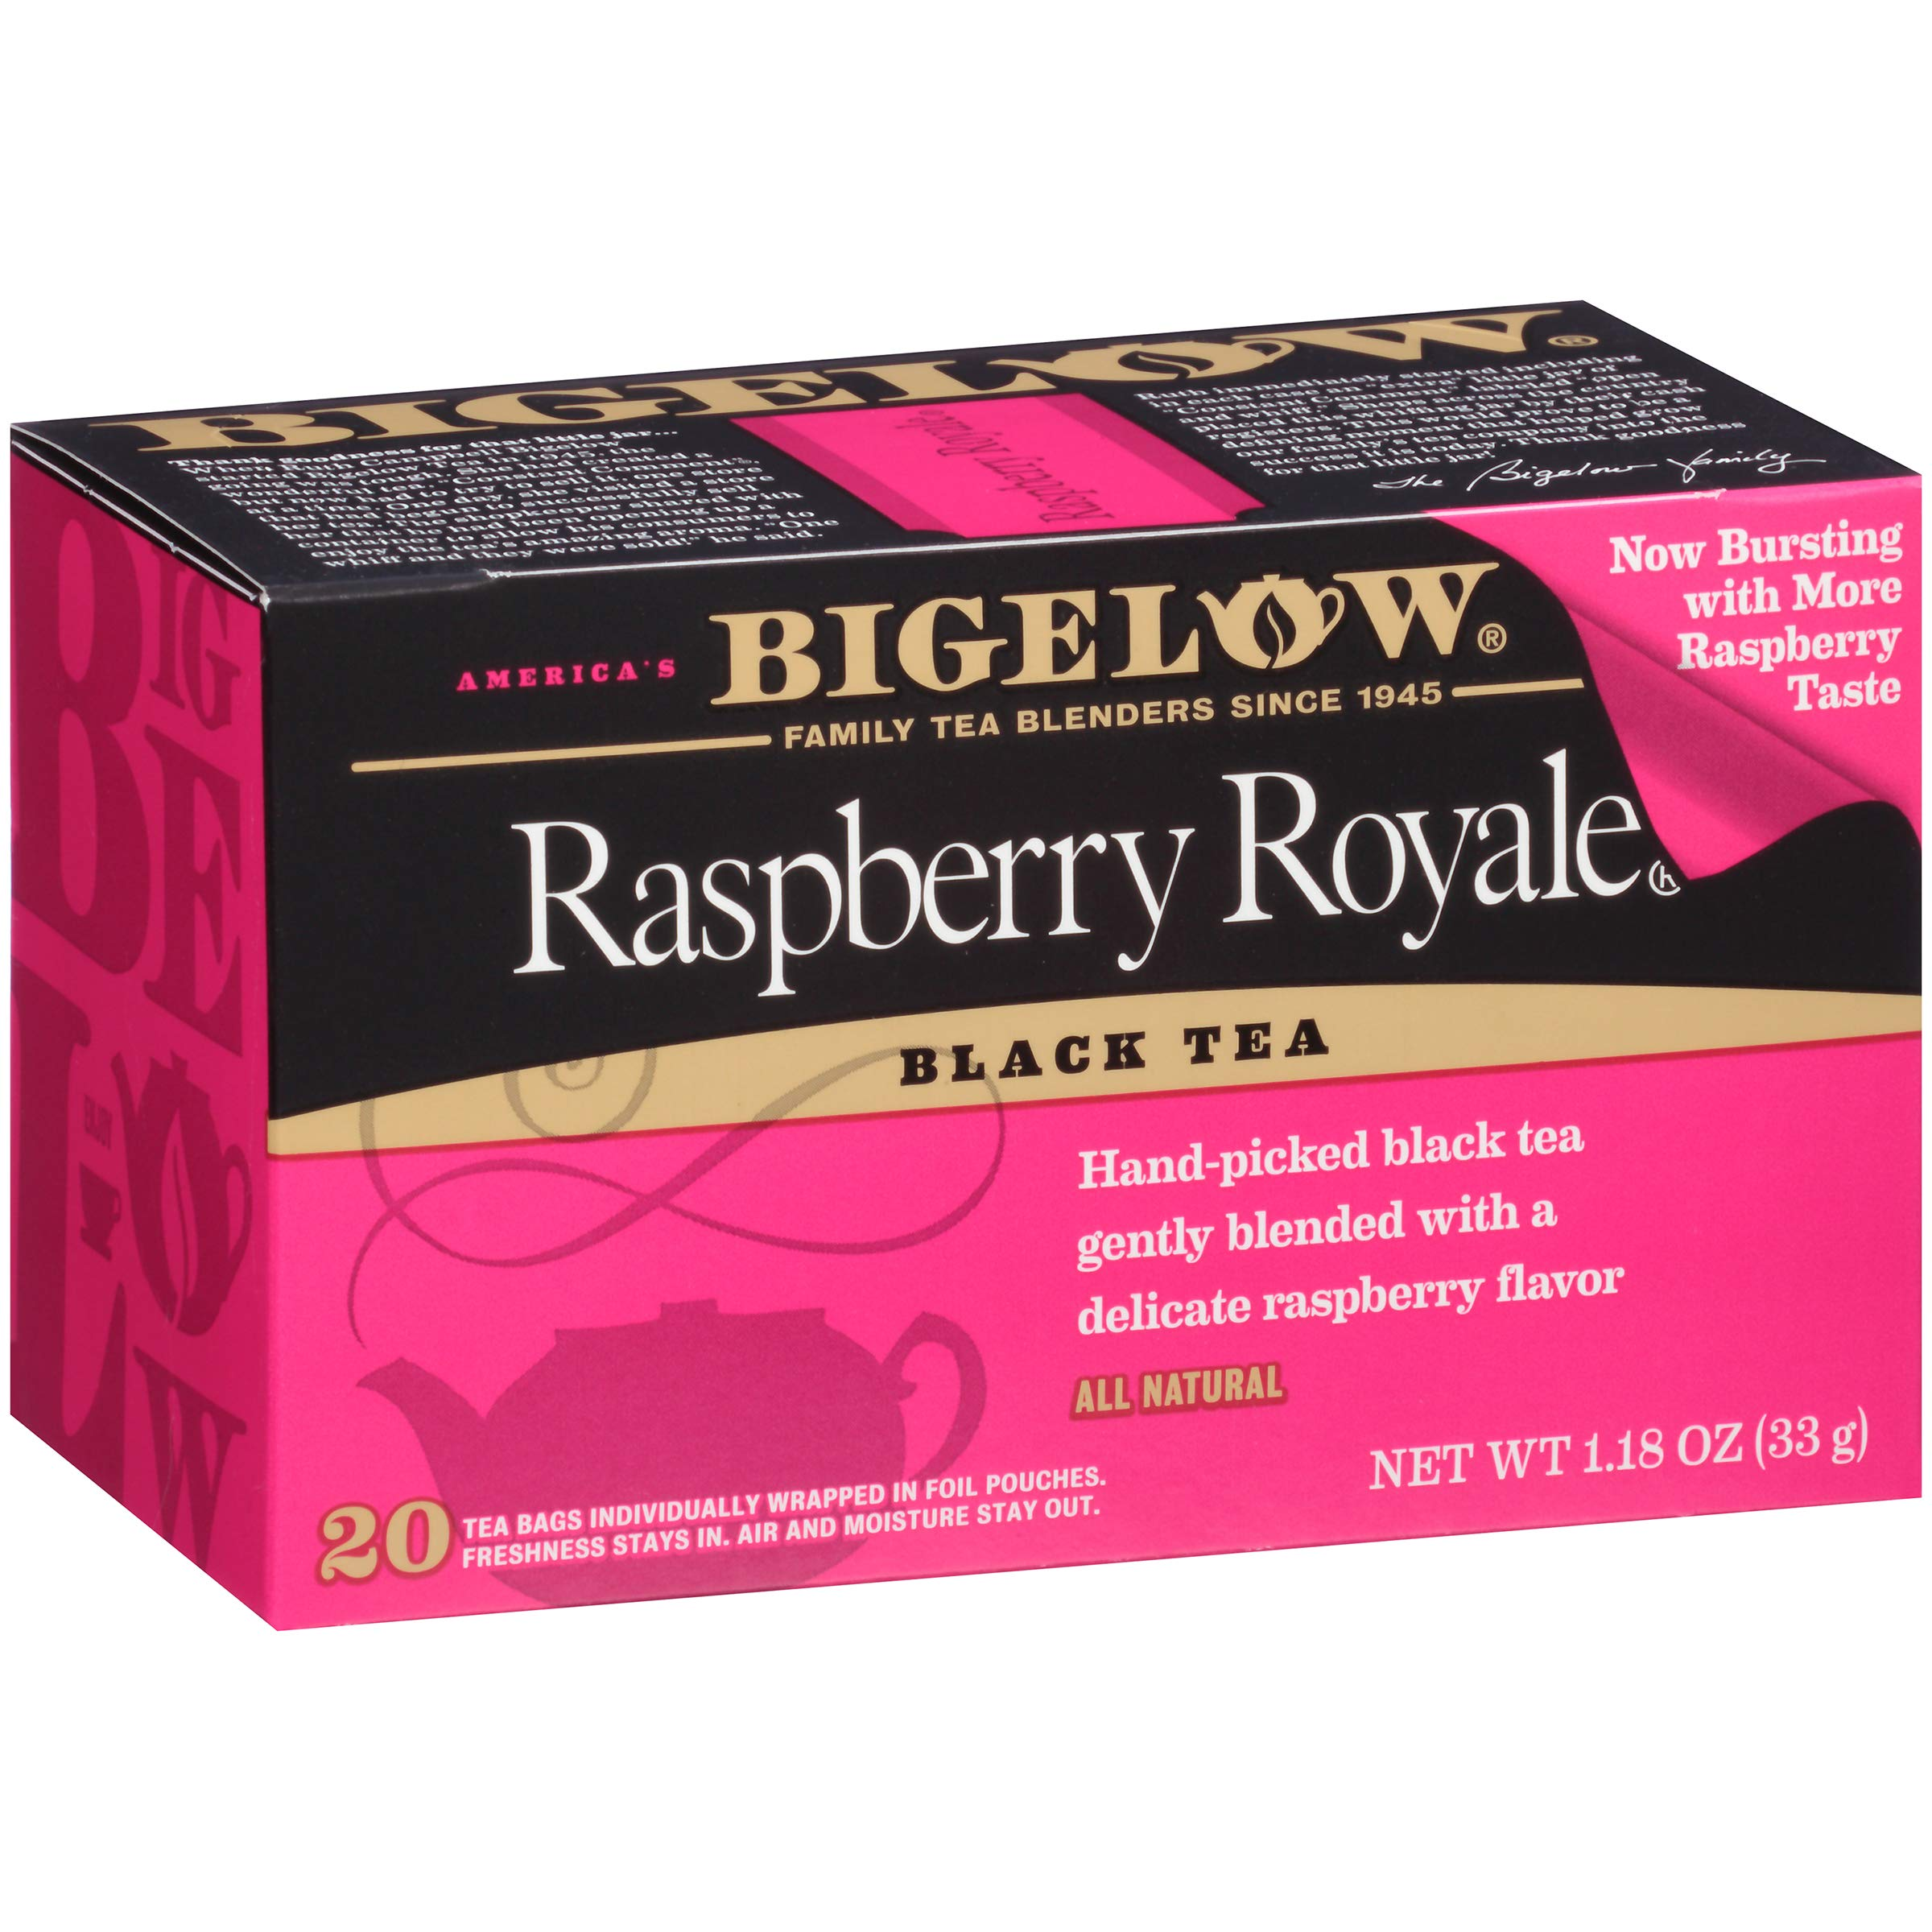 Bigelow Raspberry Royale Tea Bags 20-Count Boxes (Pack of 6), 120 Tea Bags Total. Caffeinated Individual Black Tea Bags, for Hot or Iced Tea, Drink Plain or Sweetened with Honey or Sugar by Bigelow